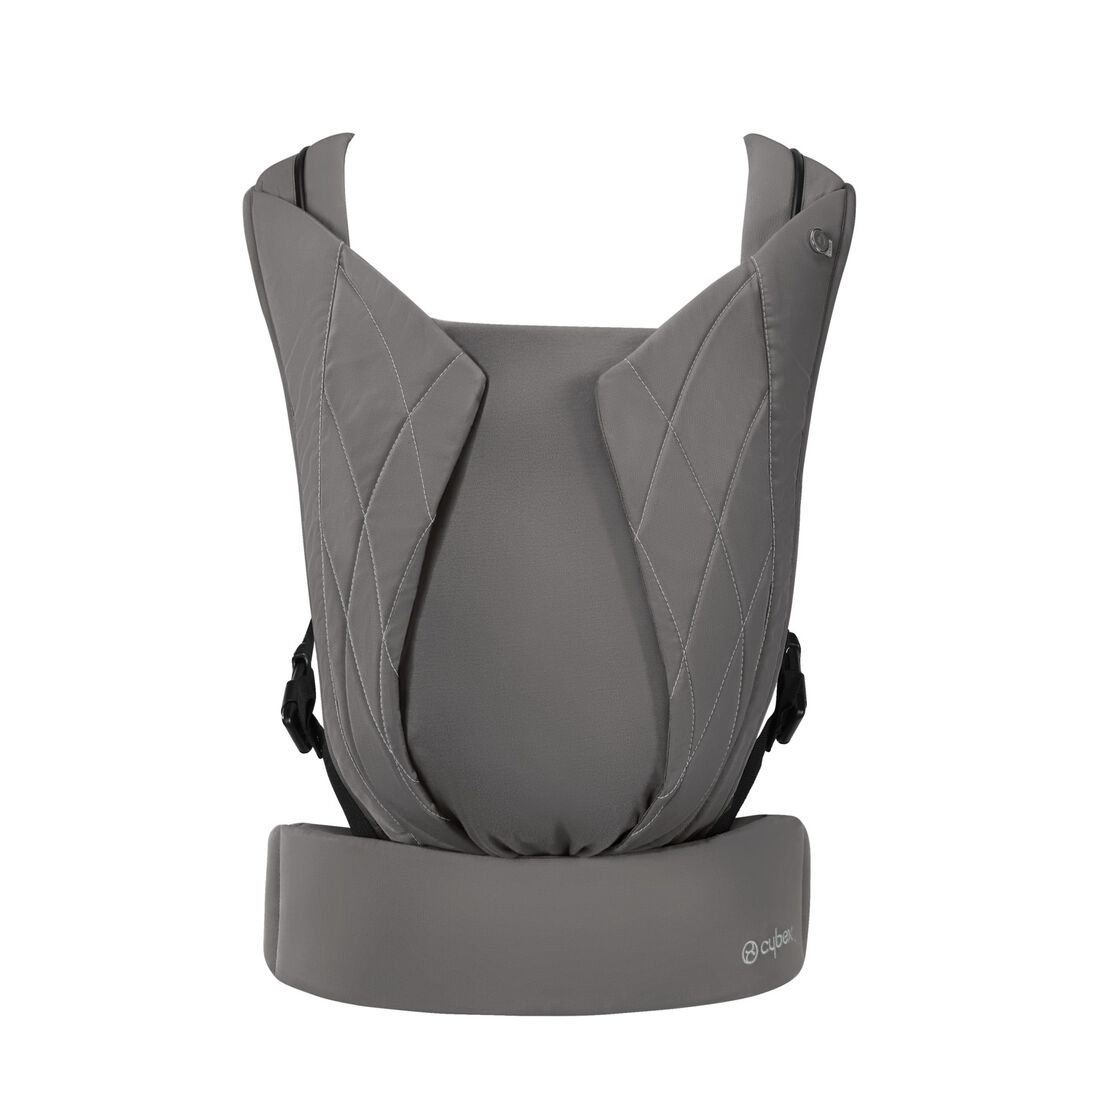 CYBEX Yema Click - Soho Grey in Soho Grey large Bild 1